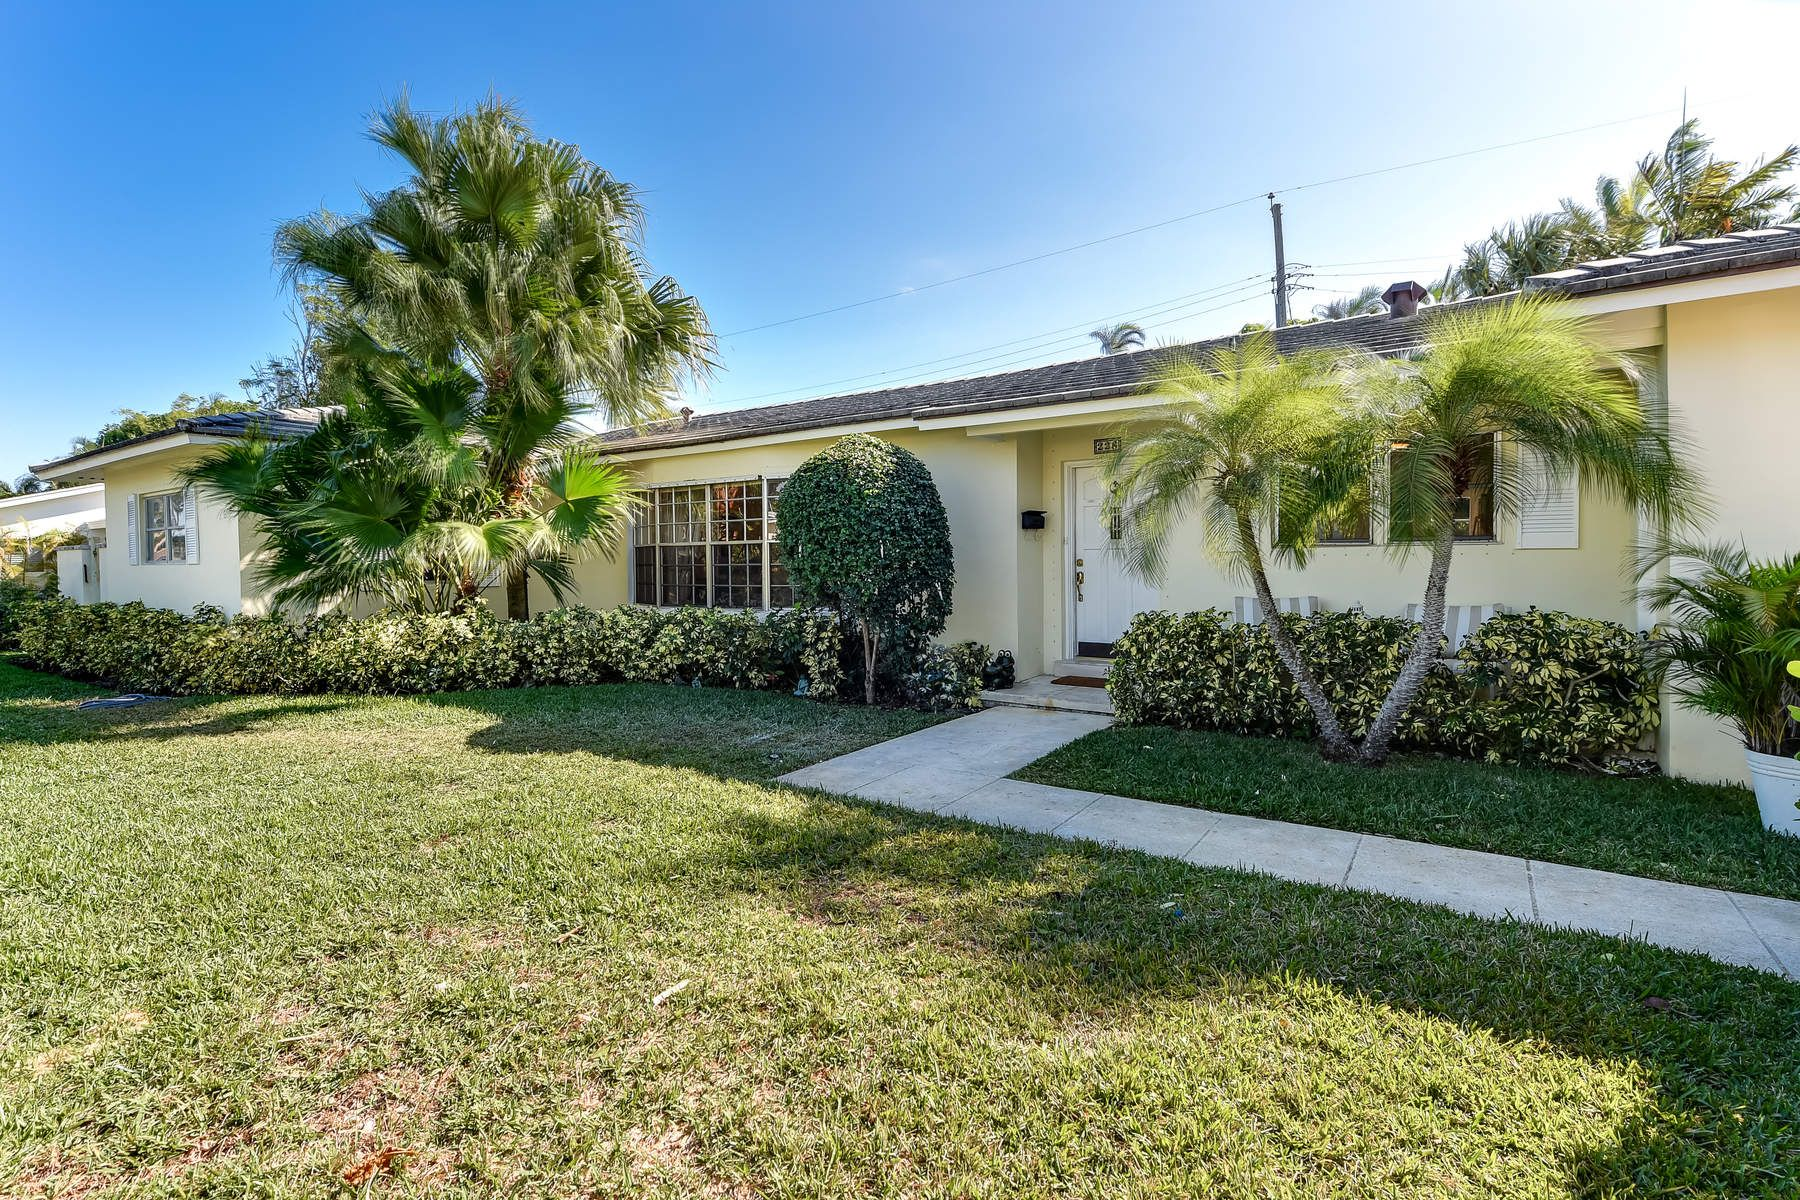 Single Family Home for Sale at Charming Lake Block Home 228 Elwa Pl, West Palm Beach, Florida, 33405 United States